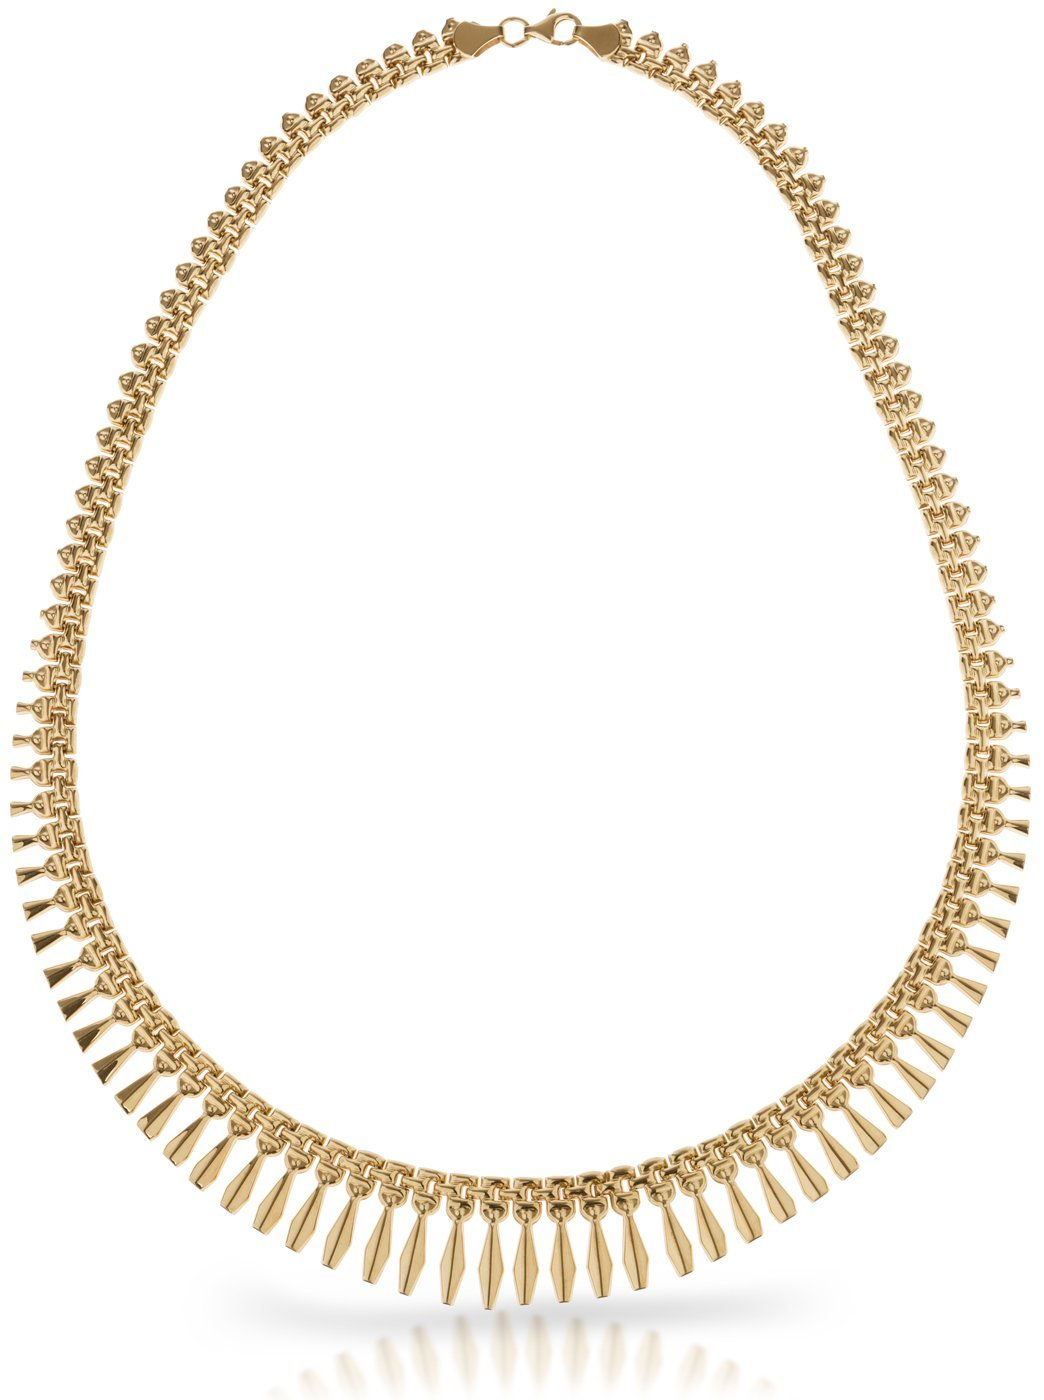 SilverLuxe 18kt Gold over Sterling Silver Graduated Design Bib Style Cleopatra Necklace